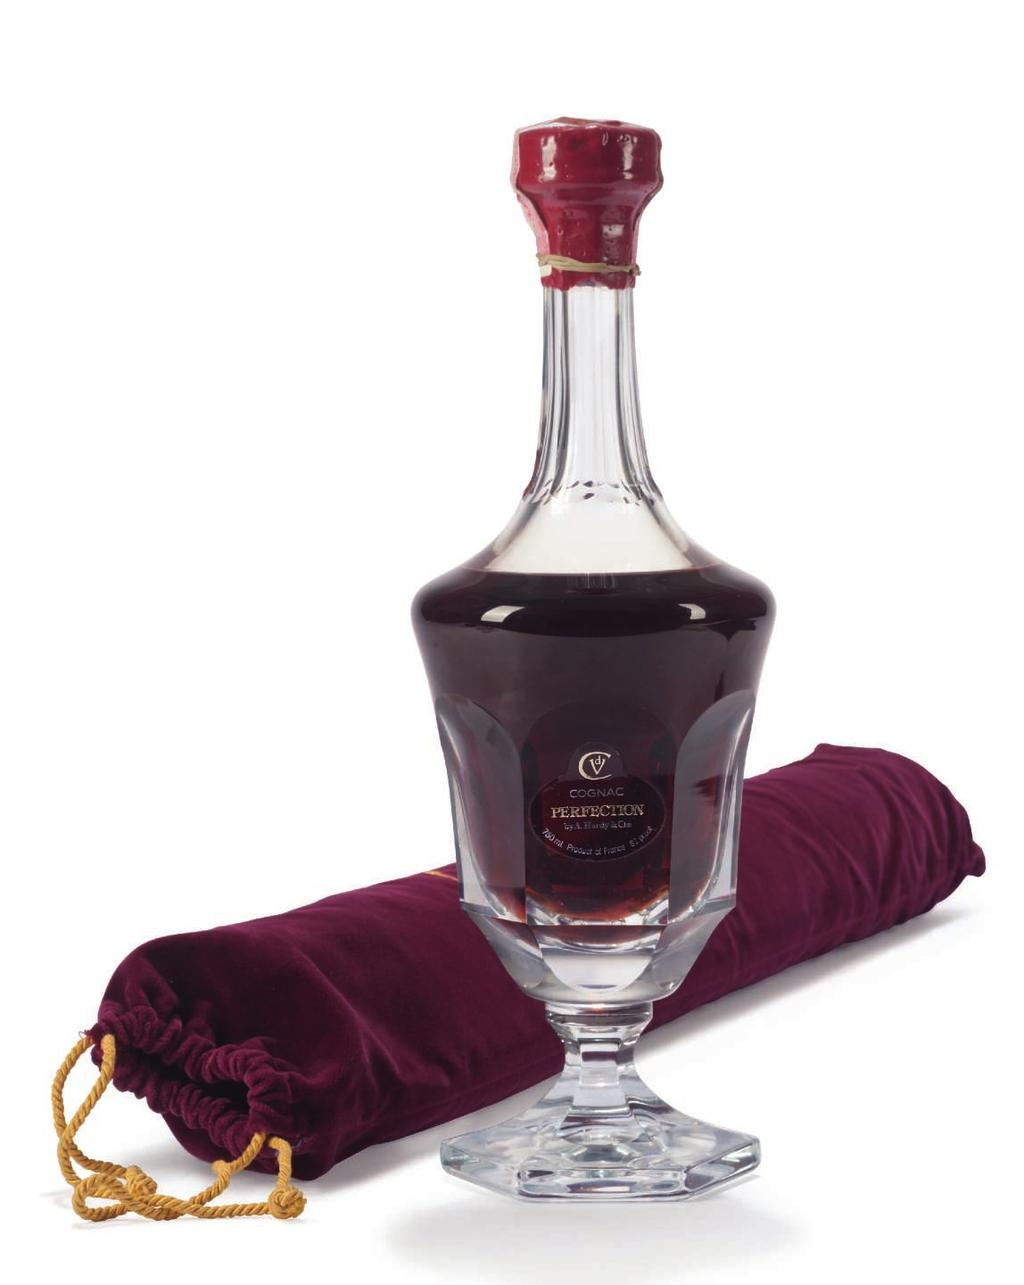 PERFECTION 67 Hardy Perfection Cognac Bottle 514 of 1200, includes Daum crystal decanter, lithograph print and crystal stopper In presentation case 1